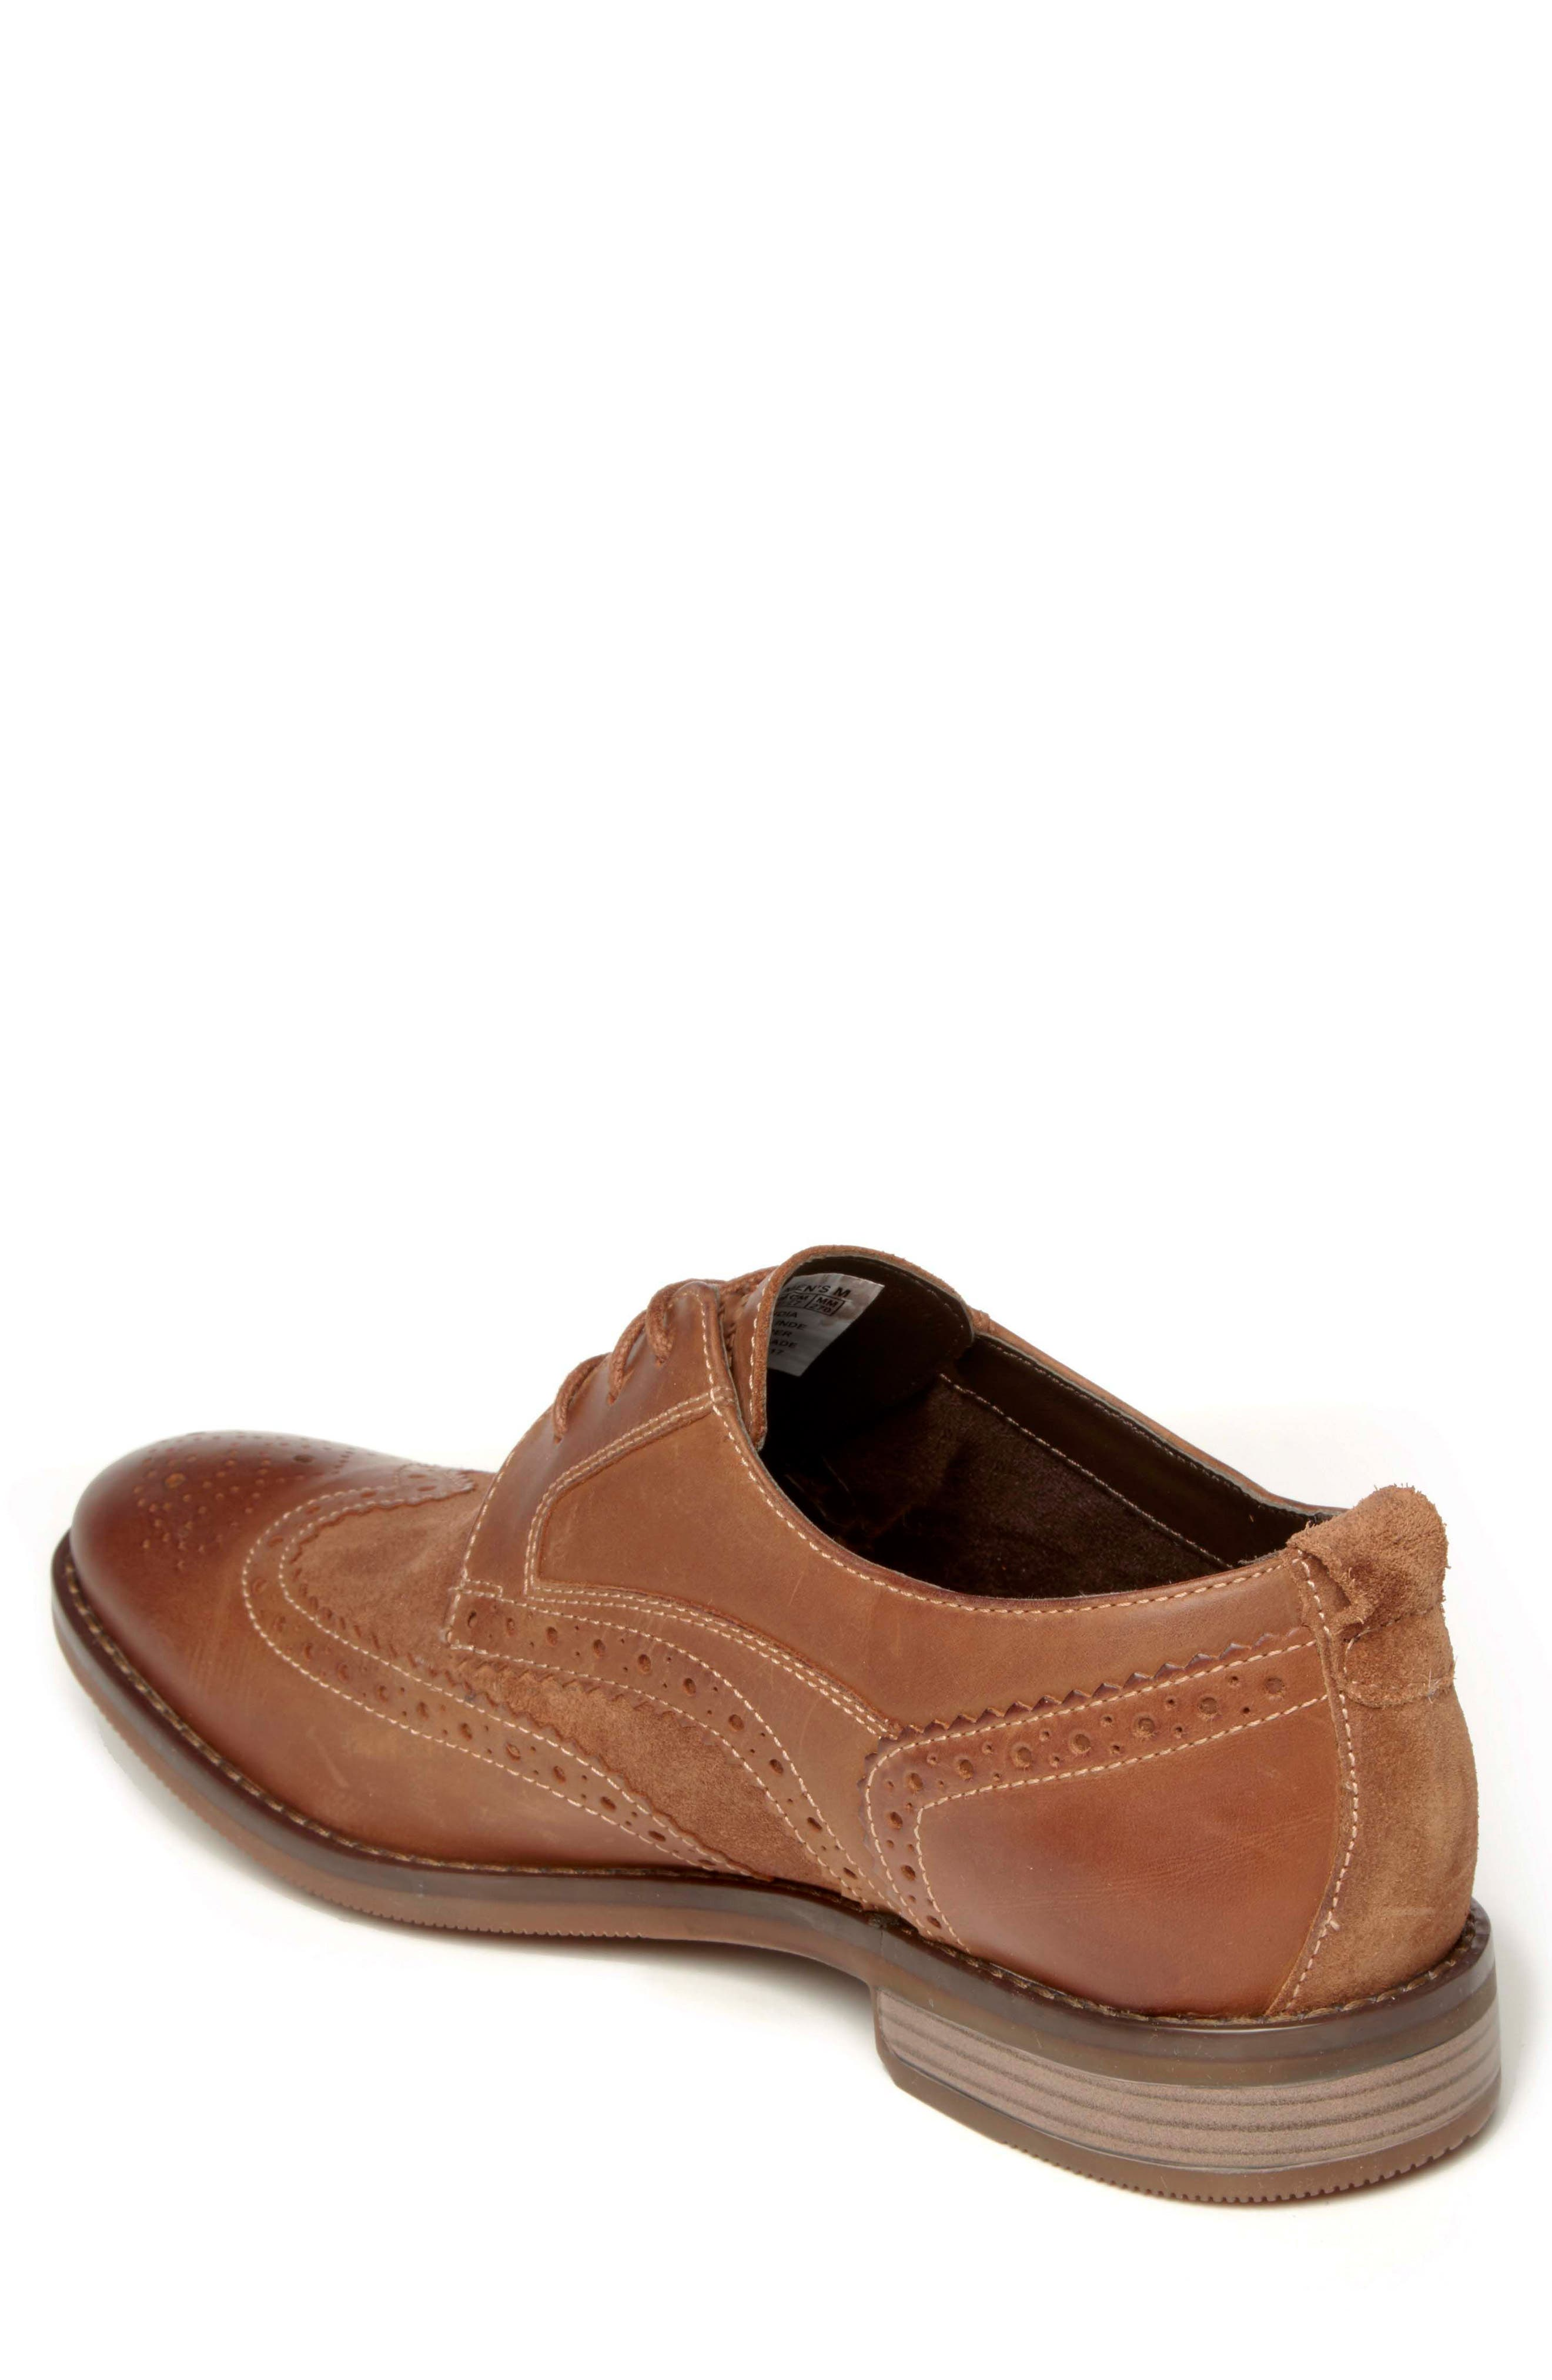 Wynstin Wingtip,                             Alternate thumbnail 2, color,                             Tobacco Leather/ Suede